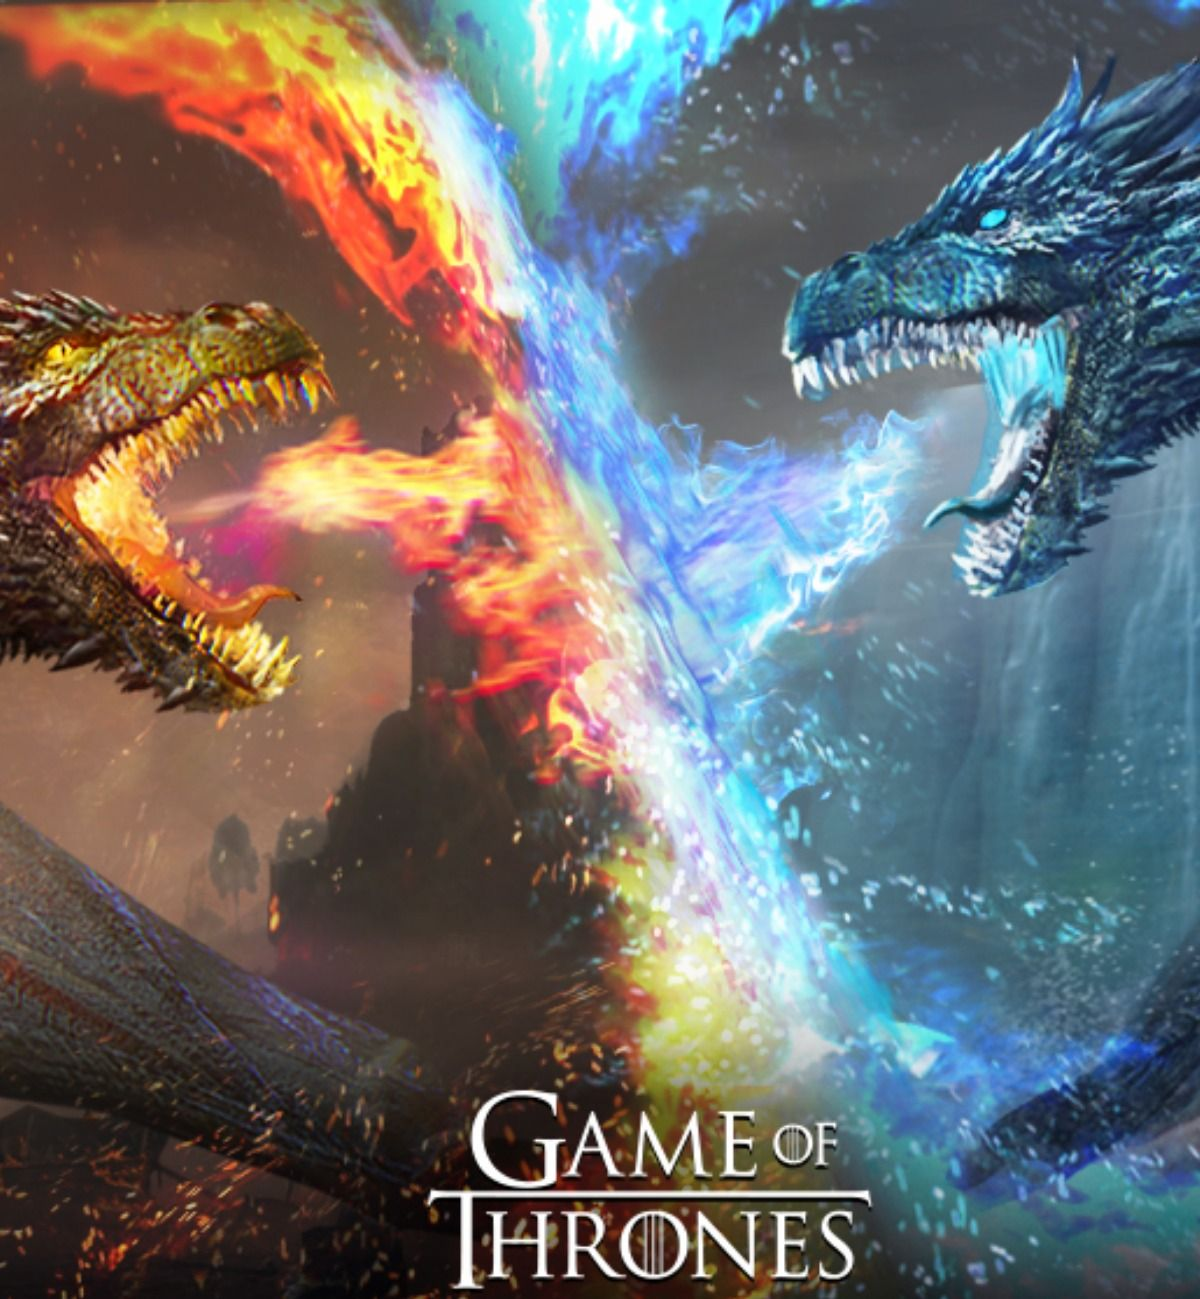 Sign up and join the battle in Game of Thrones Winter is